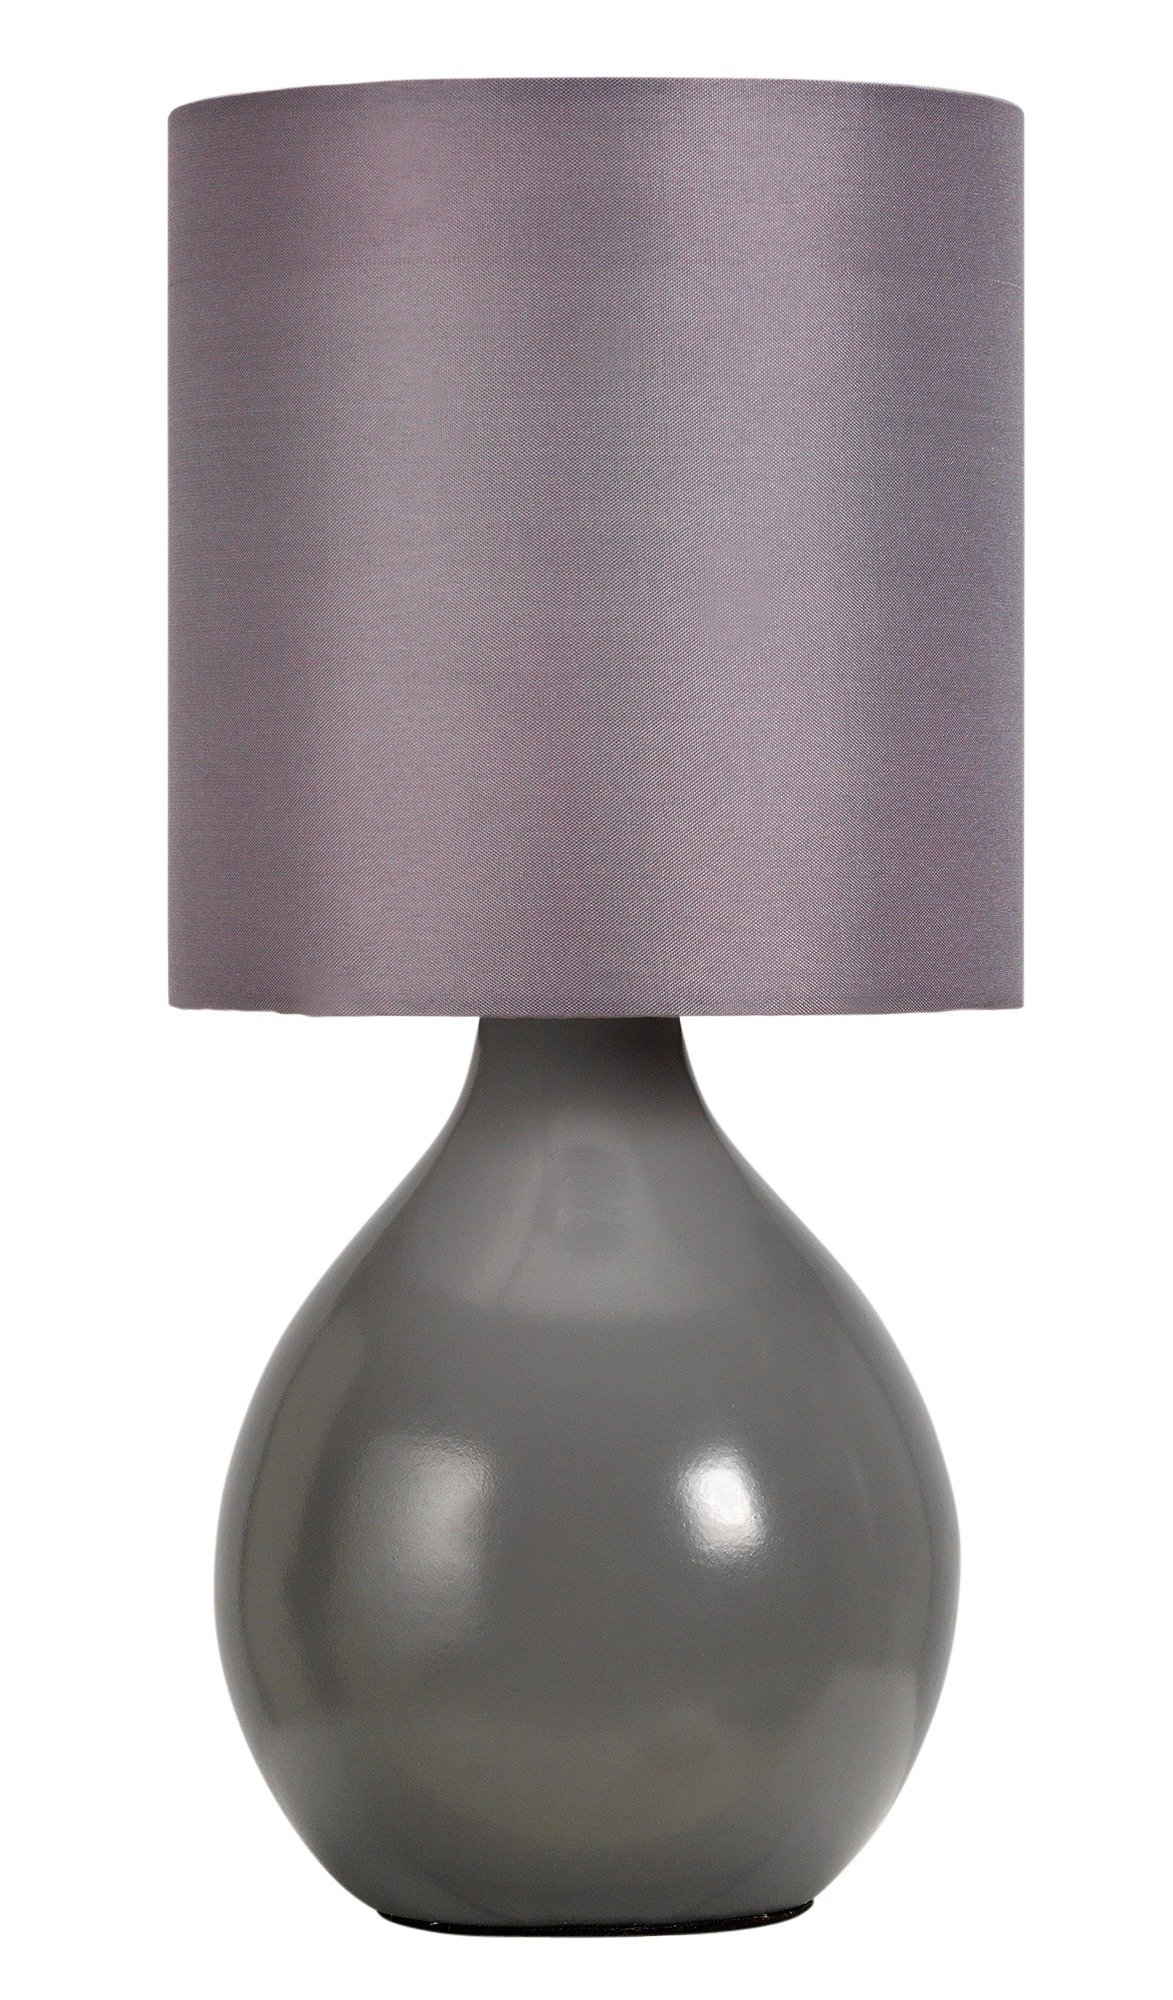 colourmatch round ceramic table lamp  flint grey.